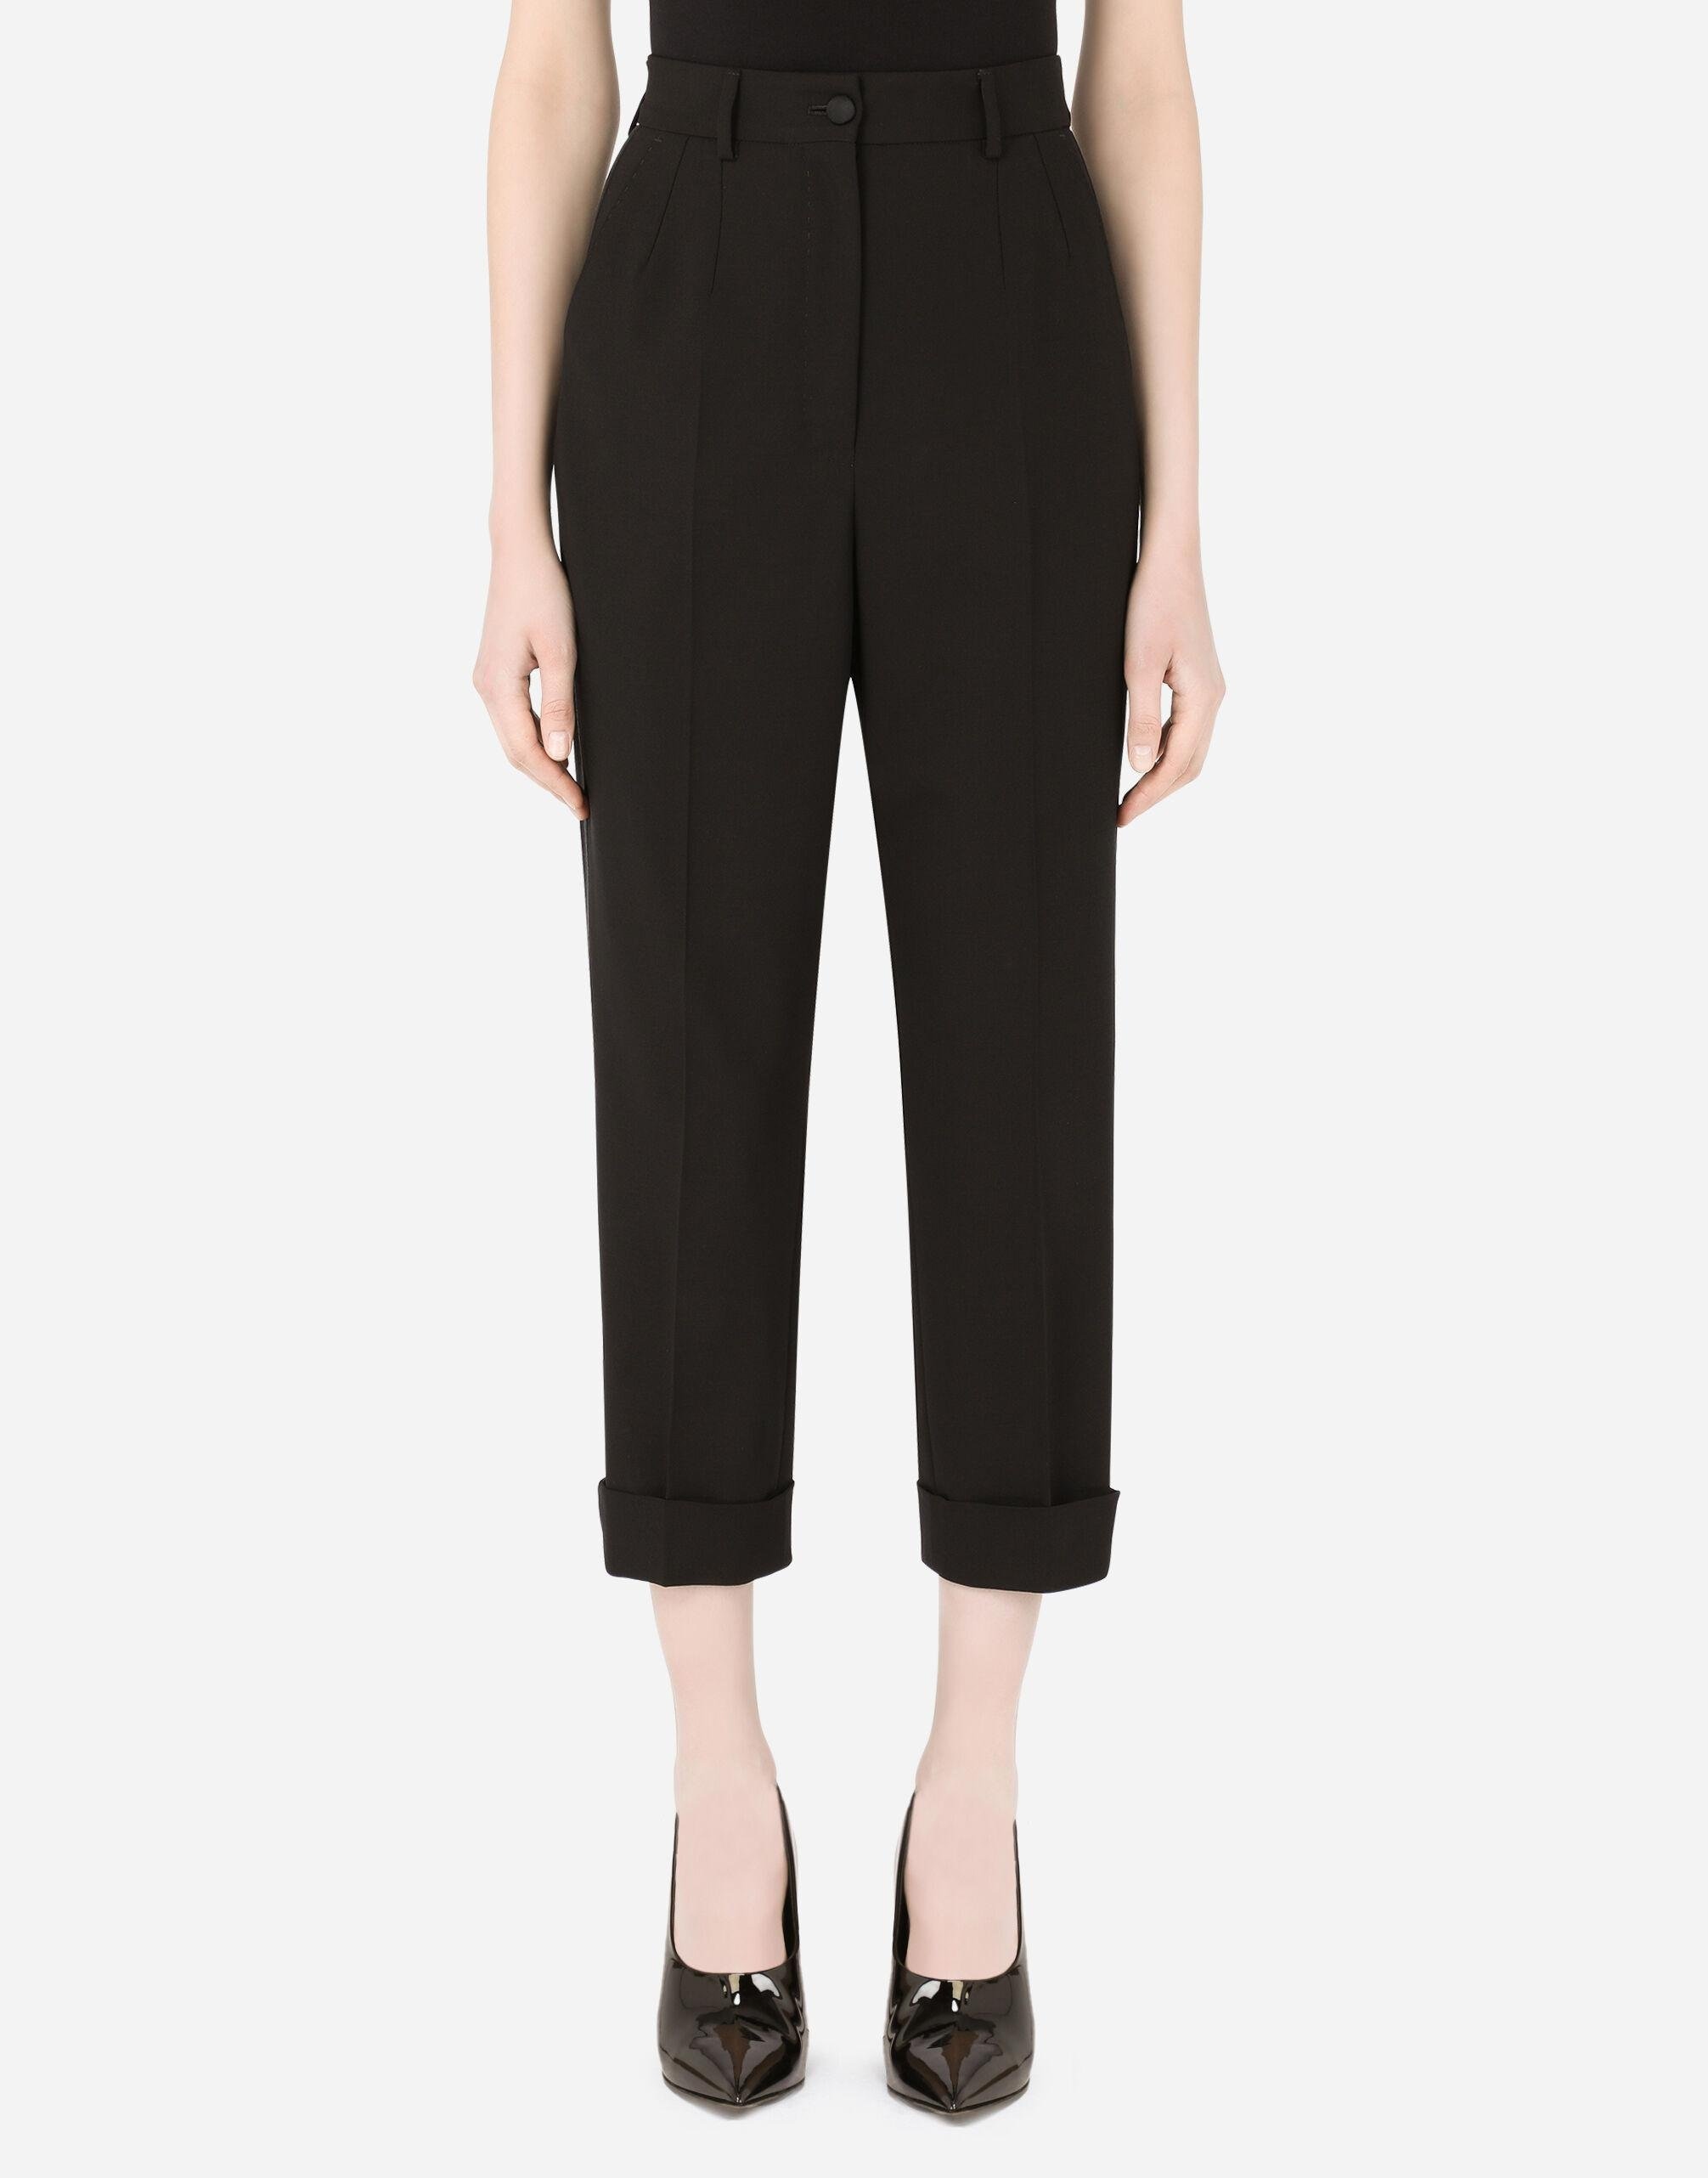 Woolen pants with turn-ups